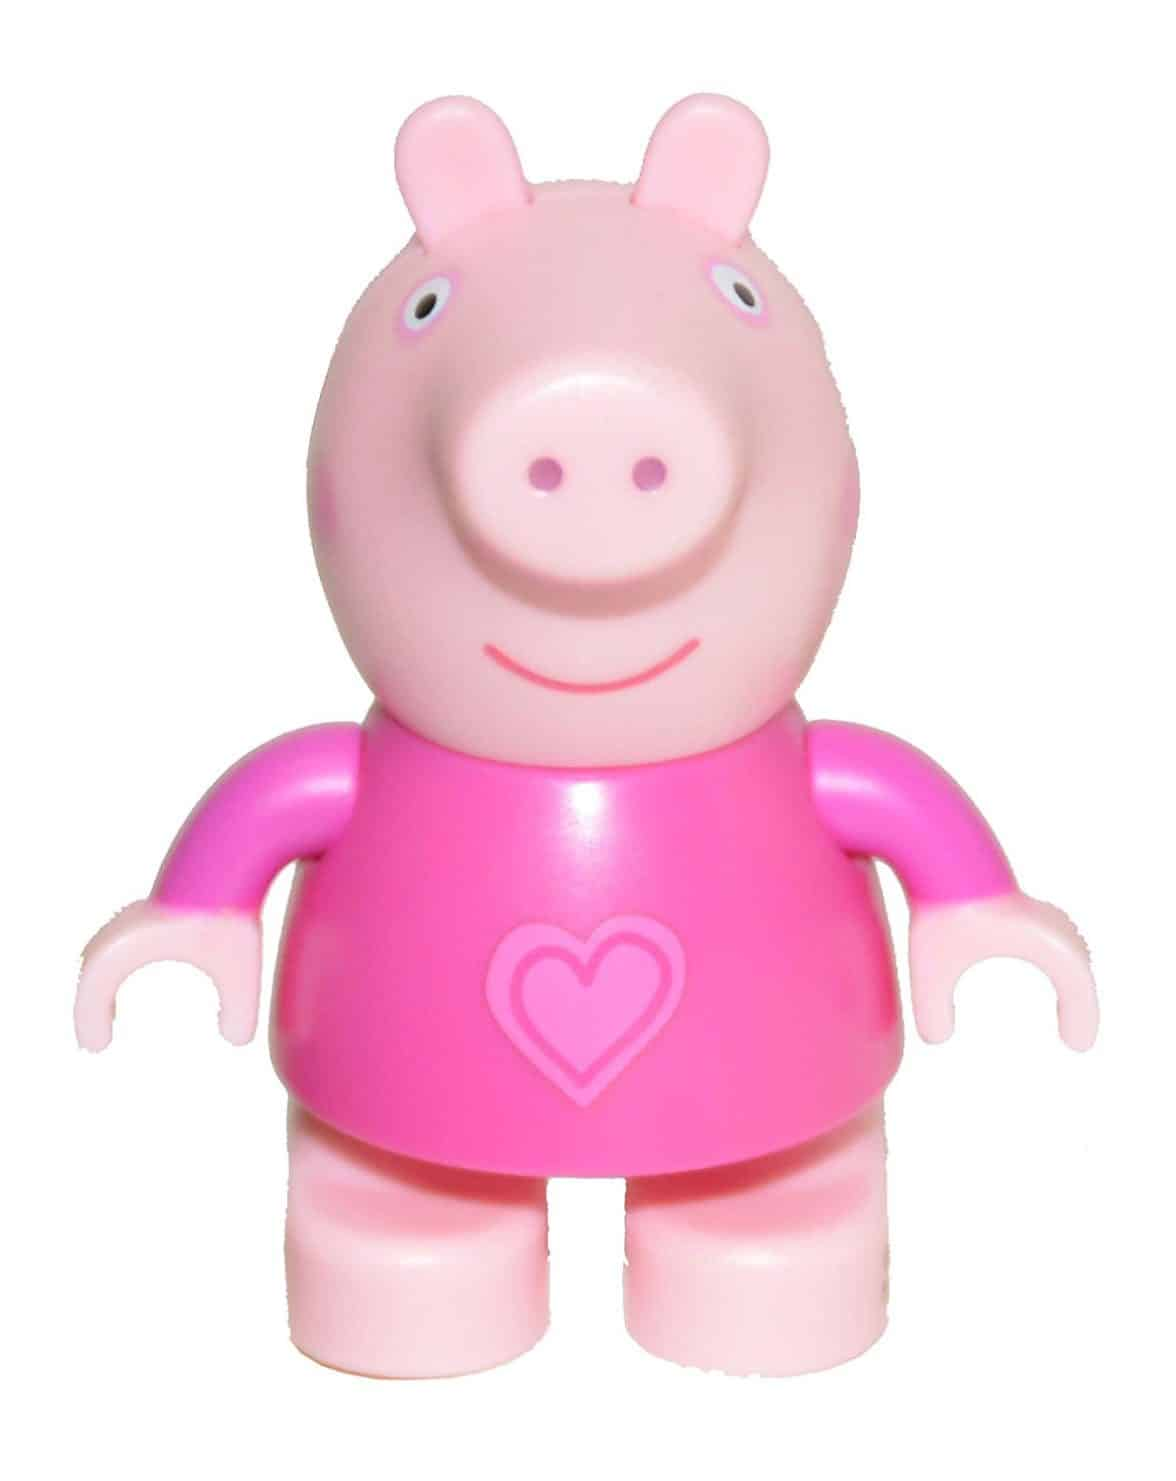 Peppa Pig Build & Play Small Figure Bag - Peppa Pig in Pajamas